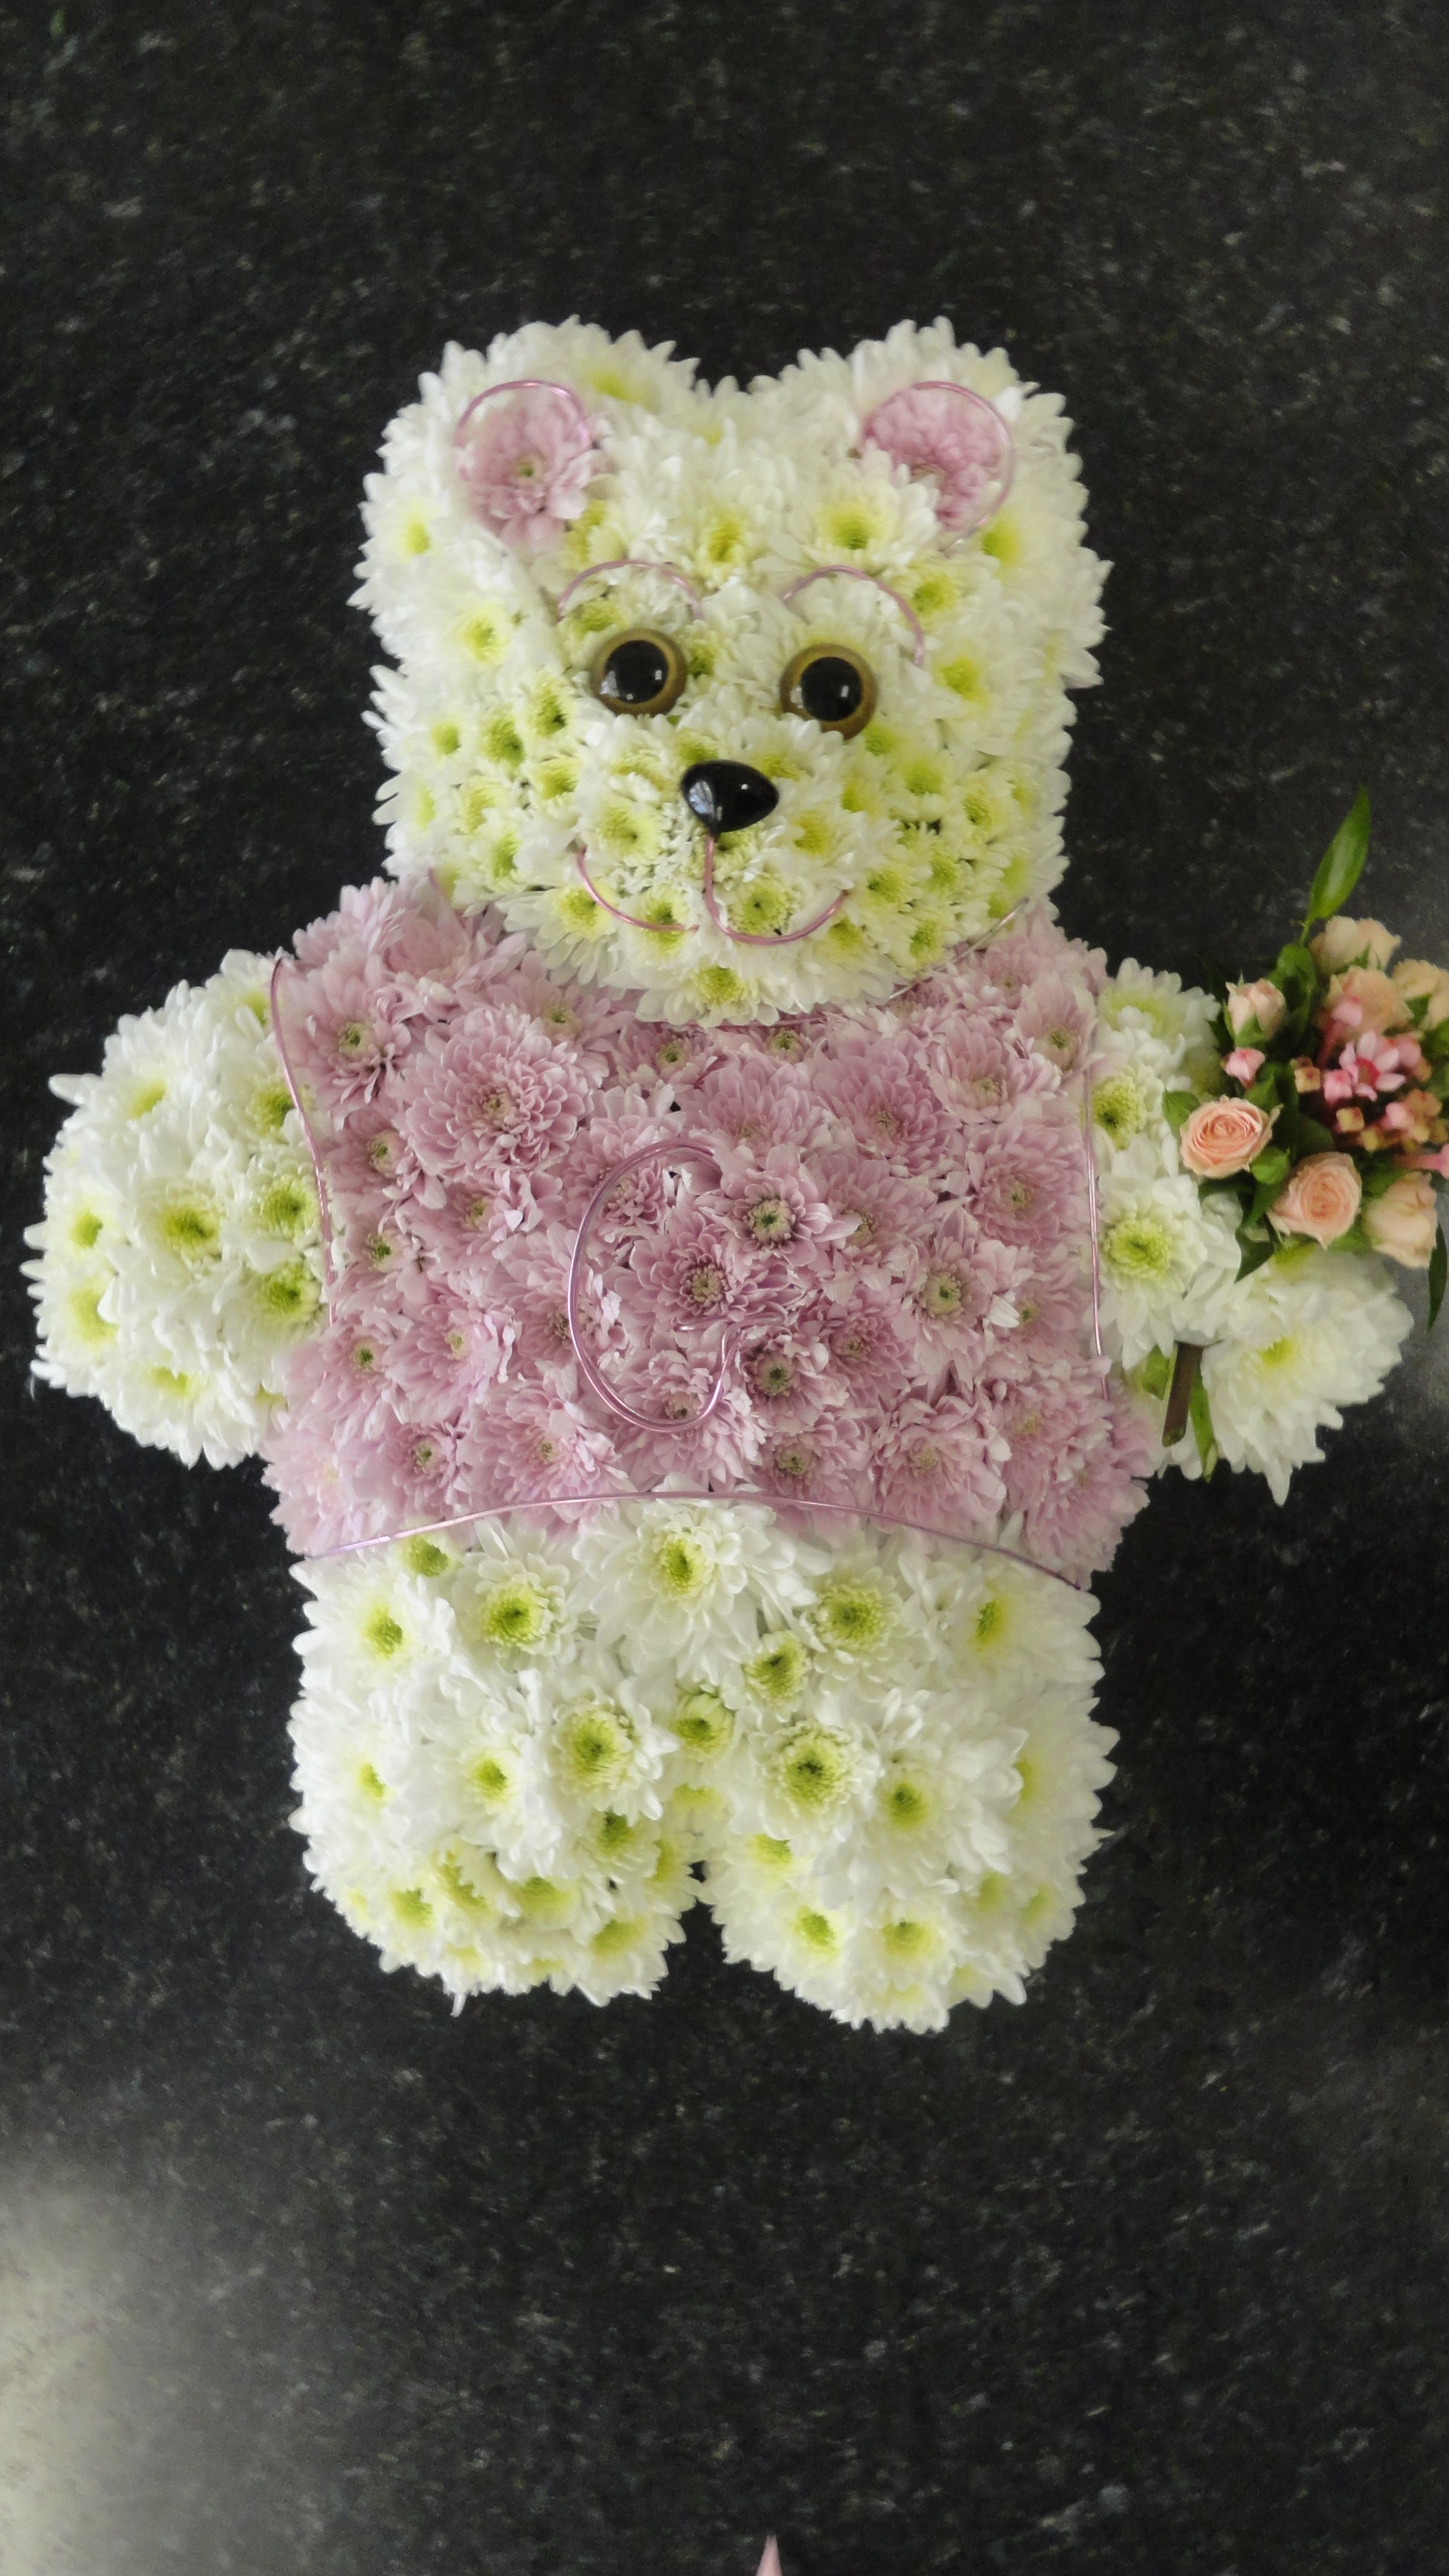 Teddy Bear for a childs funeral Funeral Flowers Pinterest